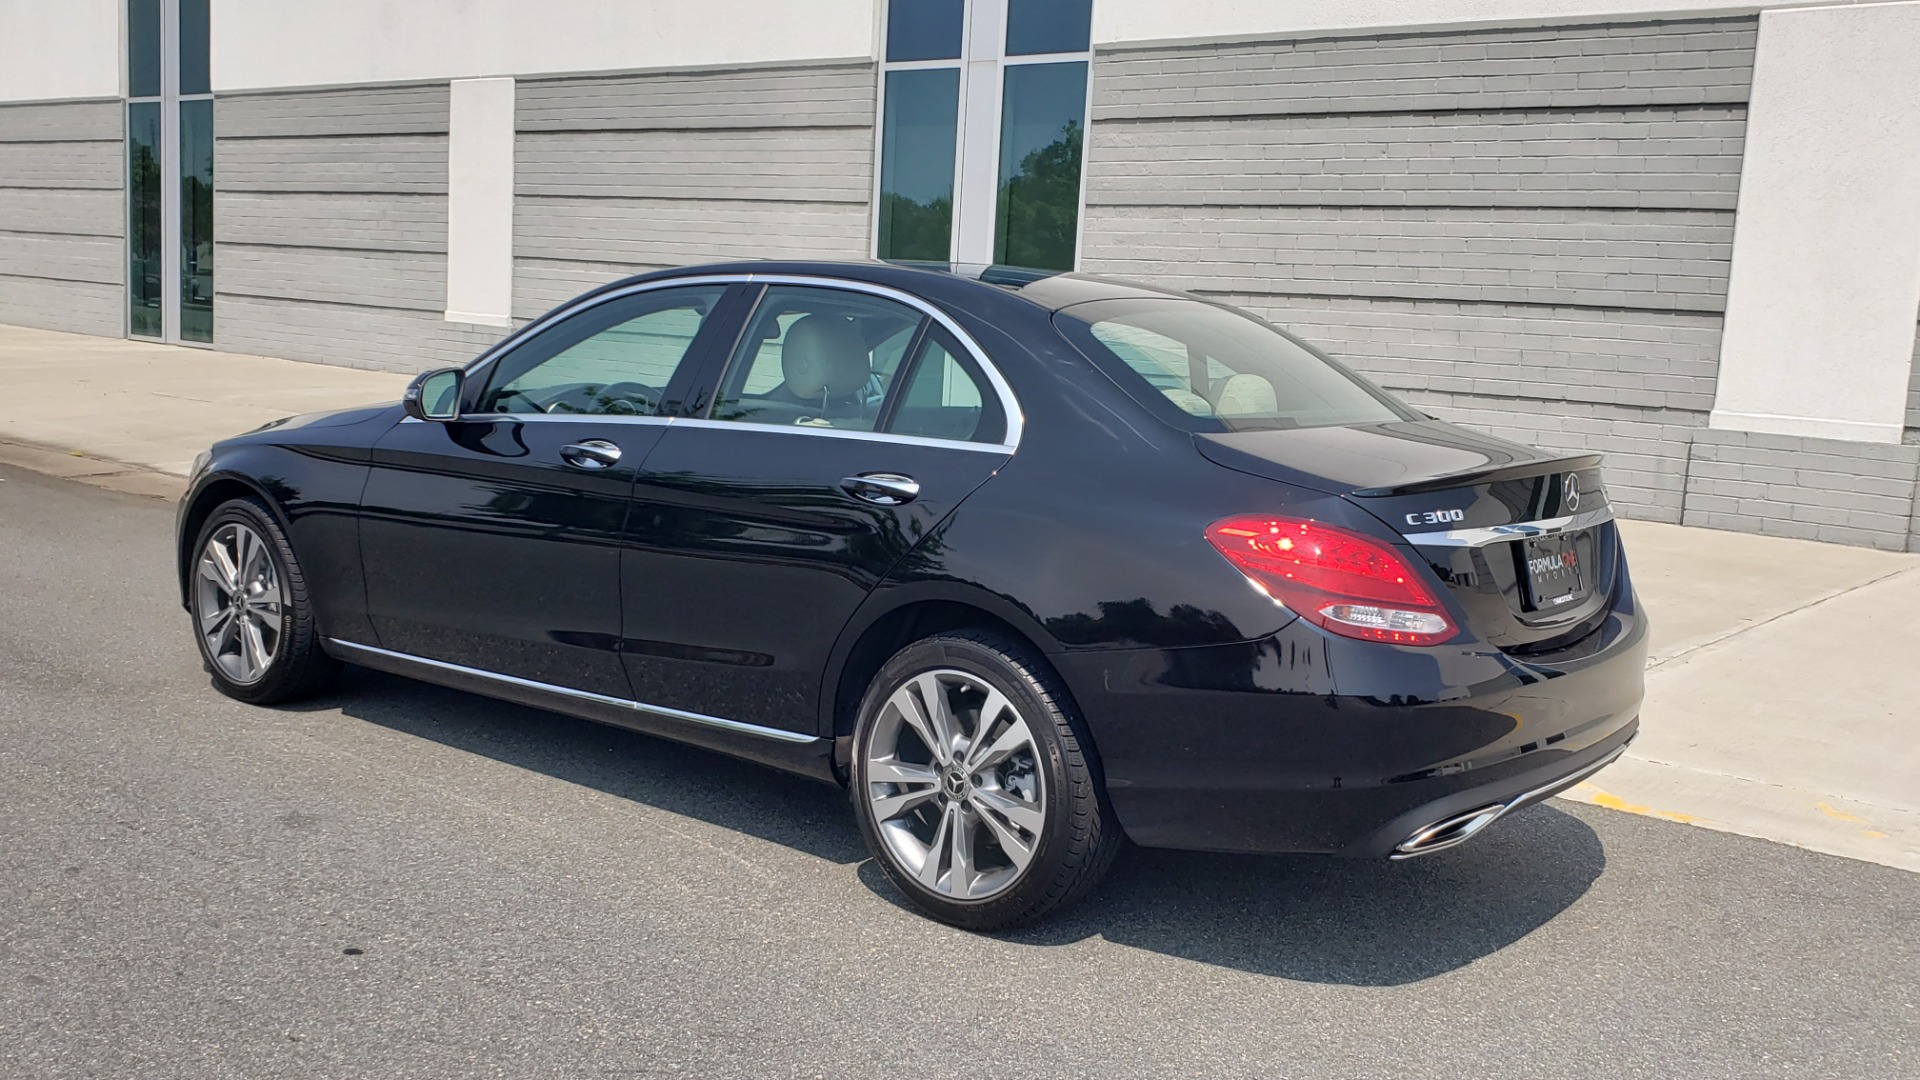 Used 2018 Mercedes-Benz C-CLASS C 300 4MATIC / PREMIUM / MULTIMEDIA / NAV / PANO-ROOF / BURMESTER for sale $30,495 at Formula Imports in Charlotte NC 28227 6